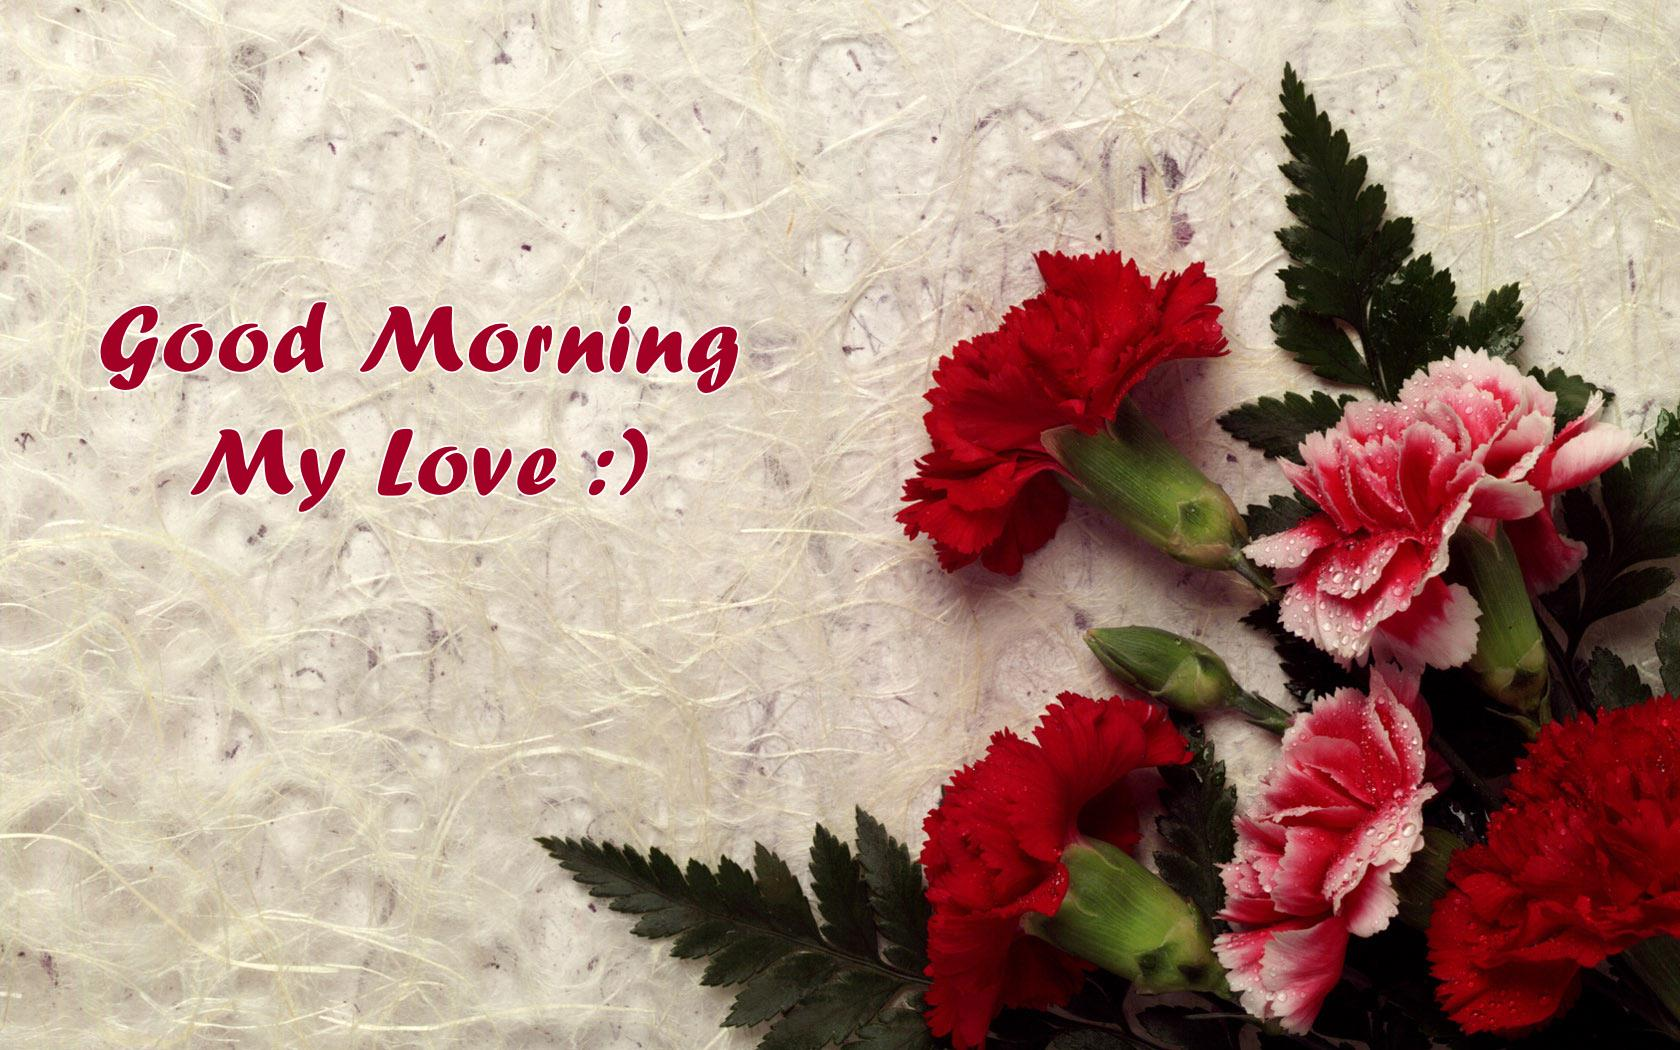 Good Morning Love Roses Images Good Morning my Love Roses 3